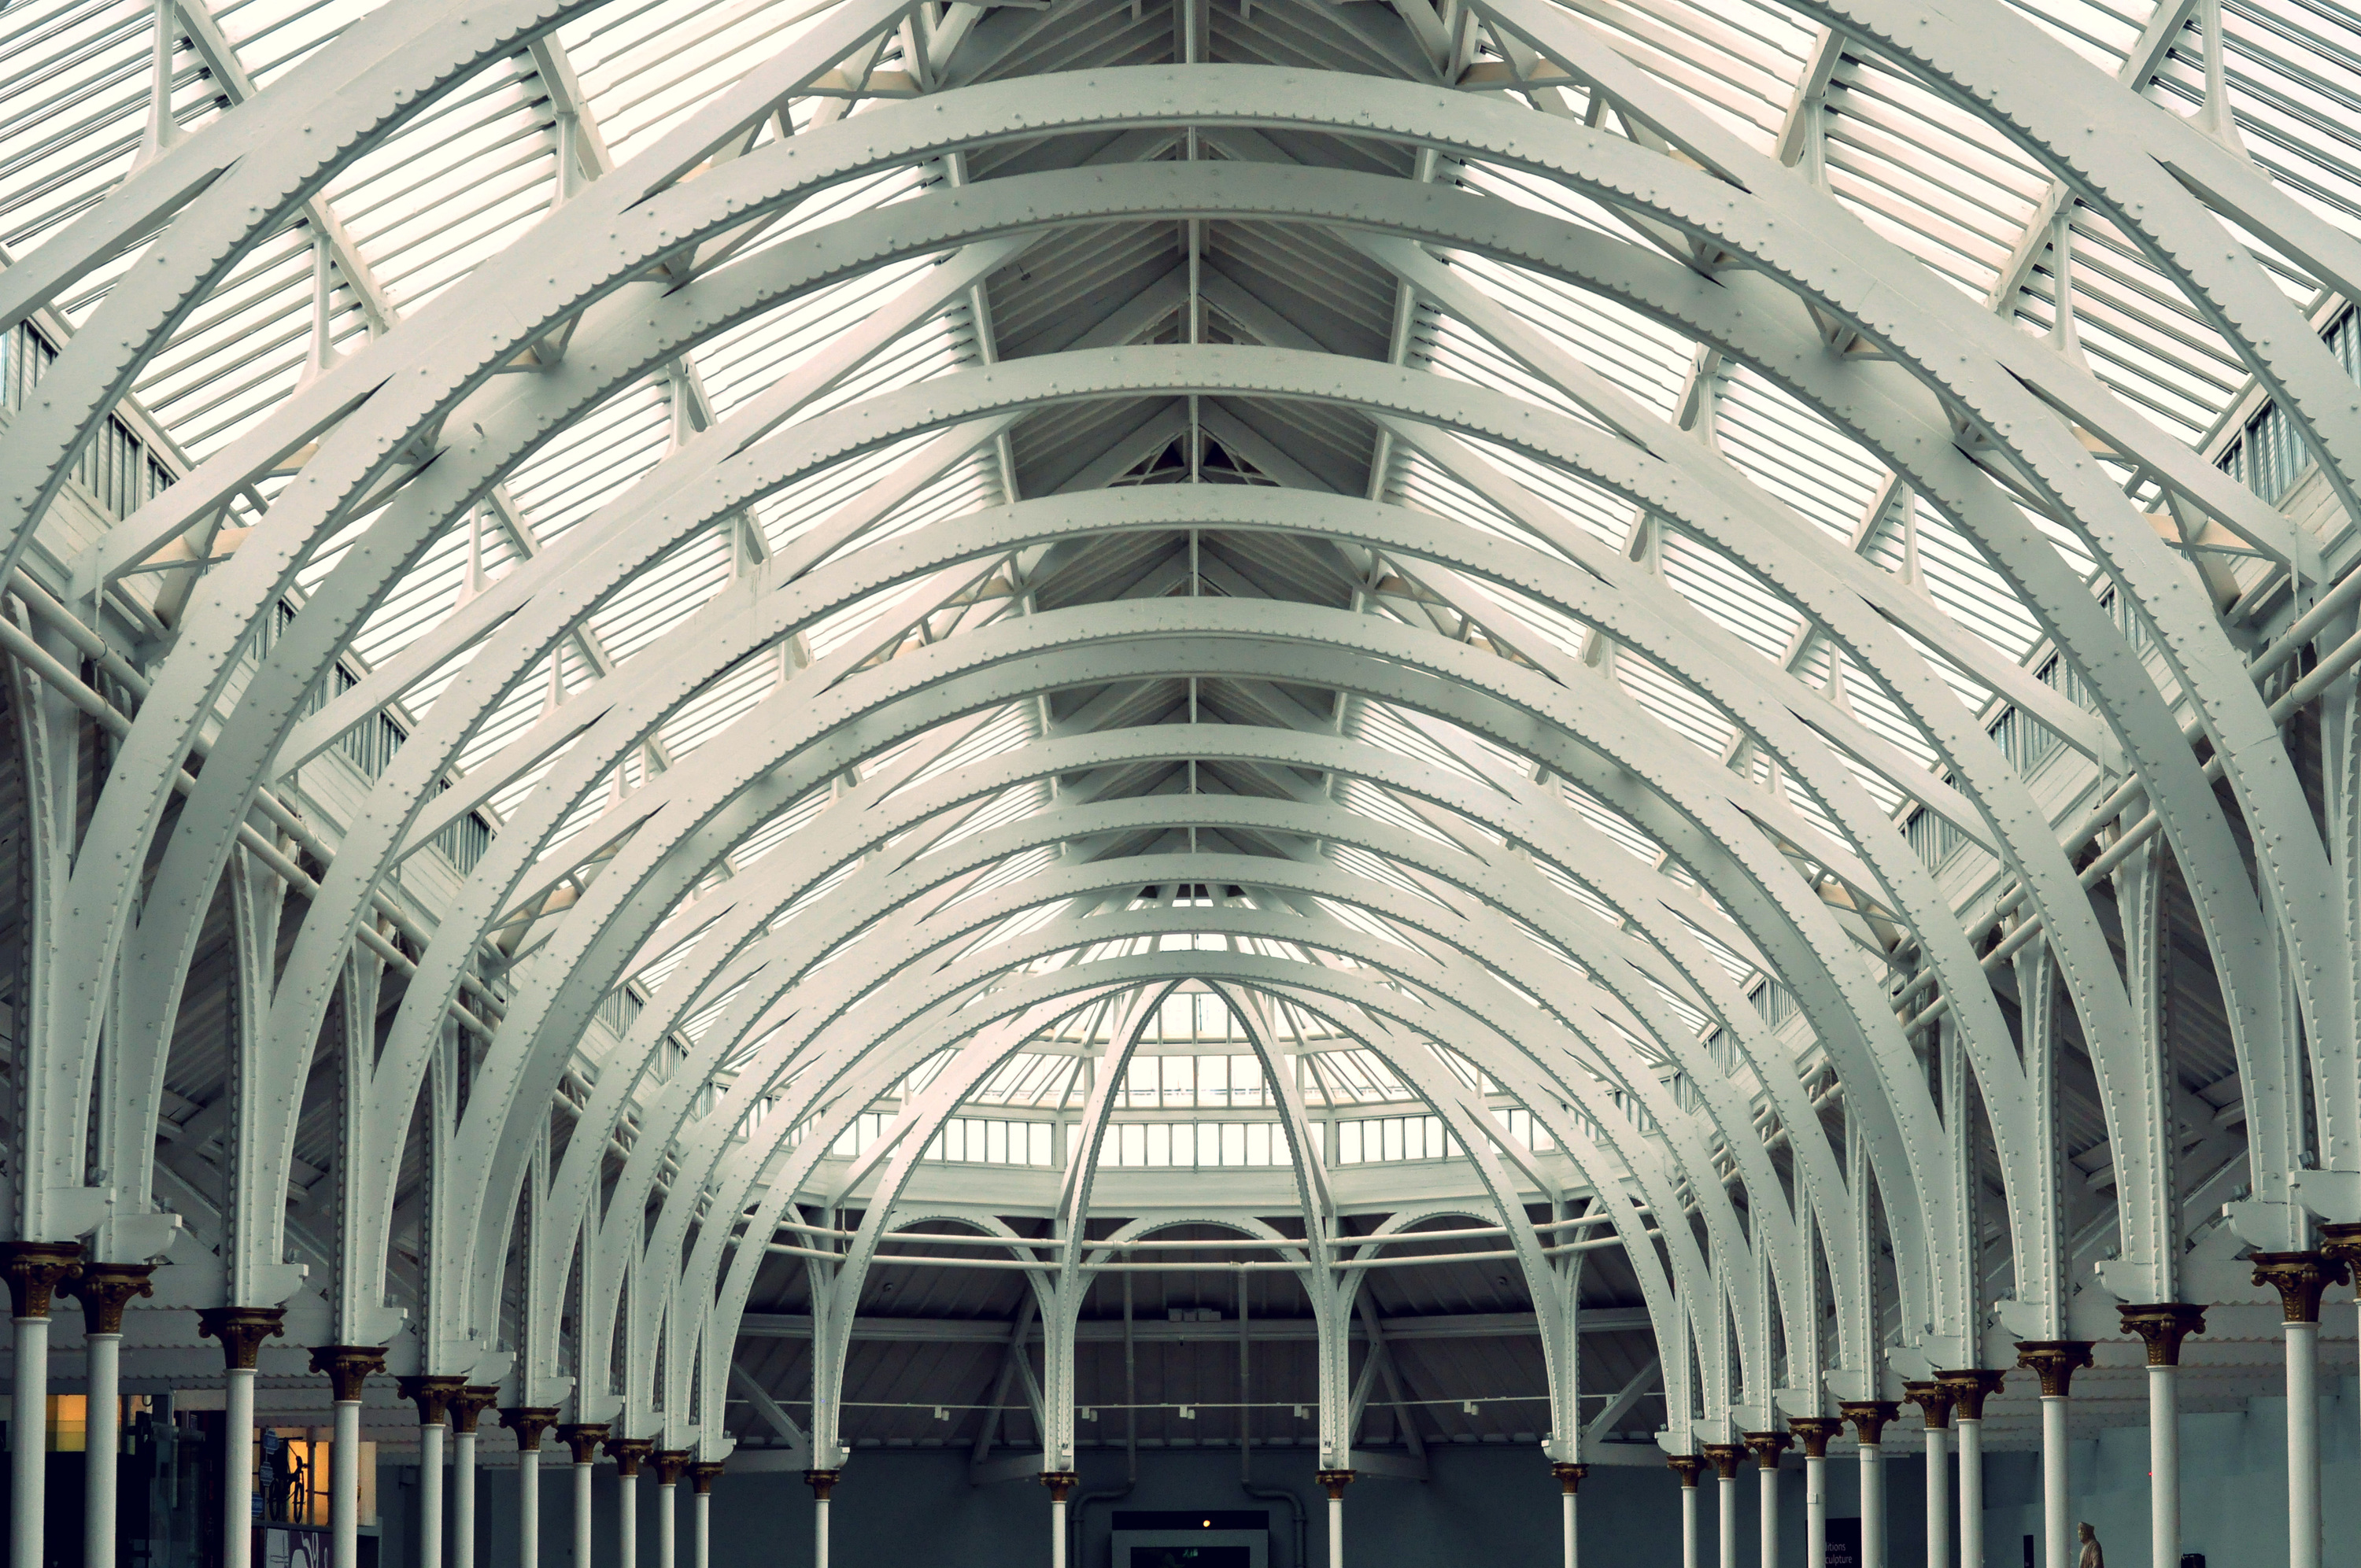 18 beautiful pictures of Edinburgh's buildings